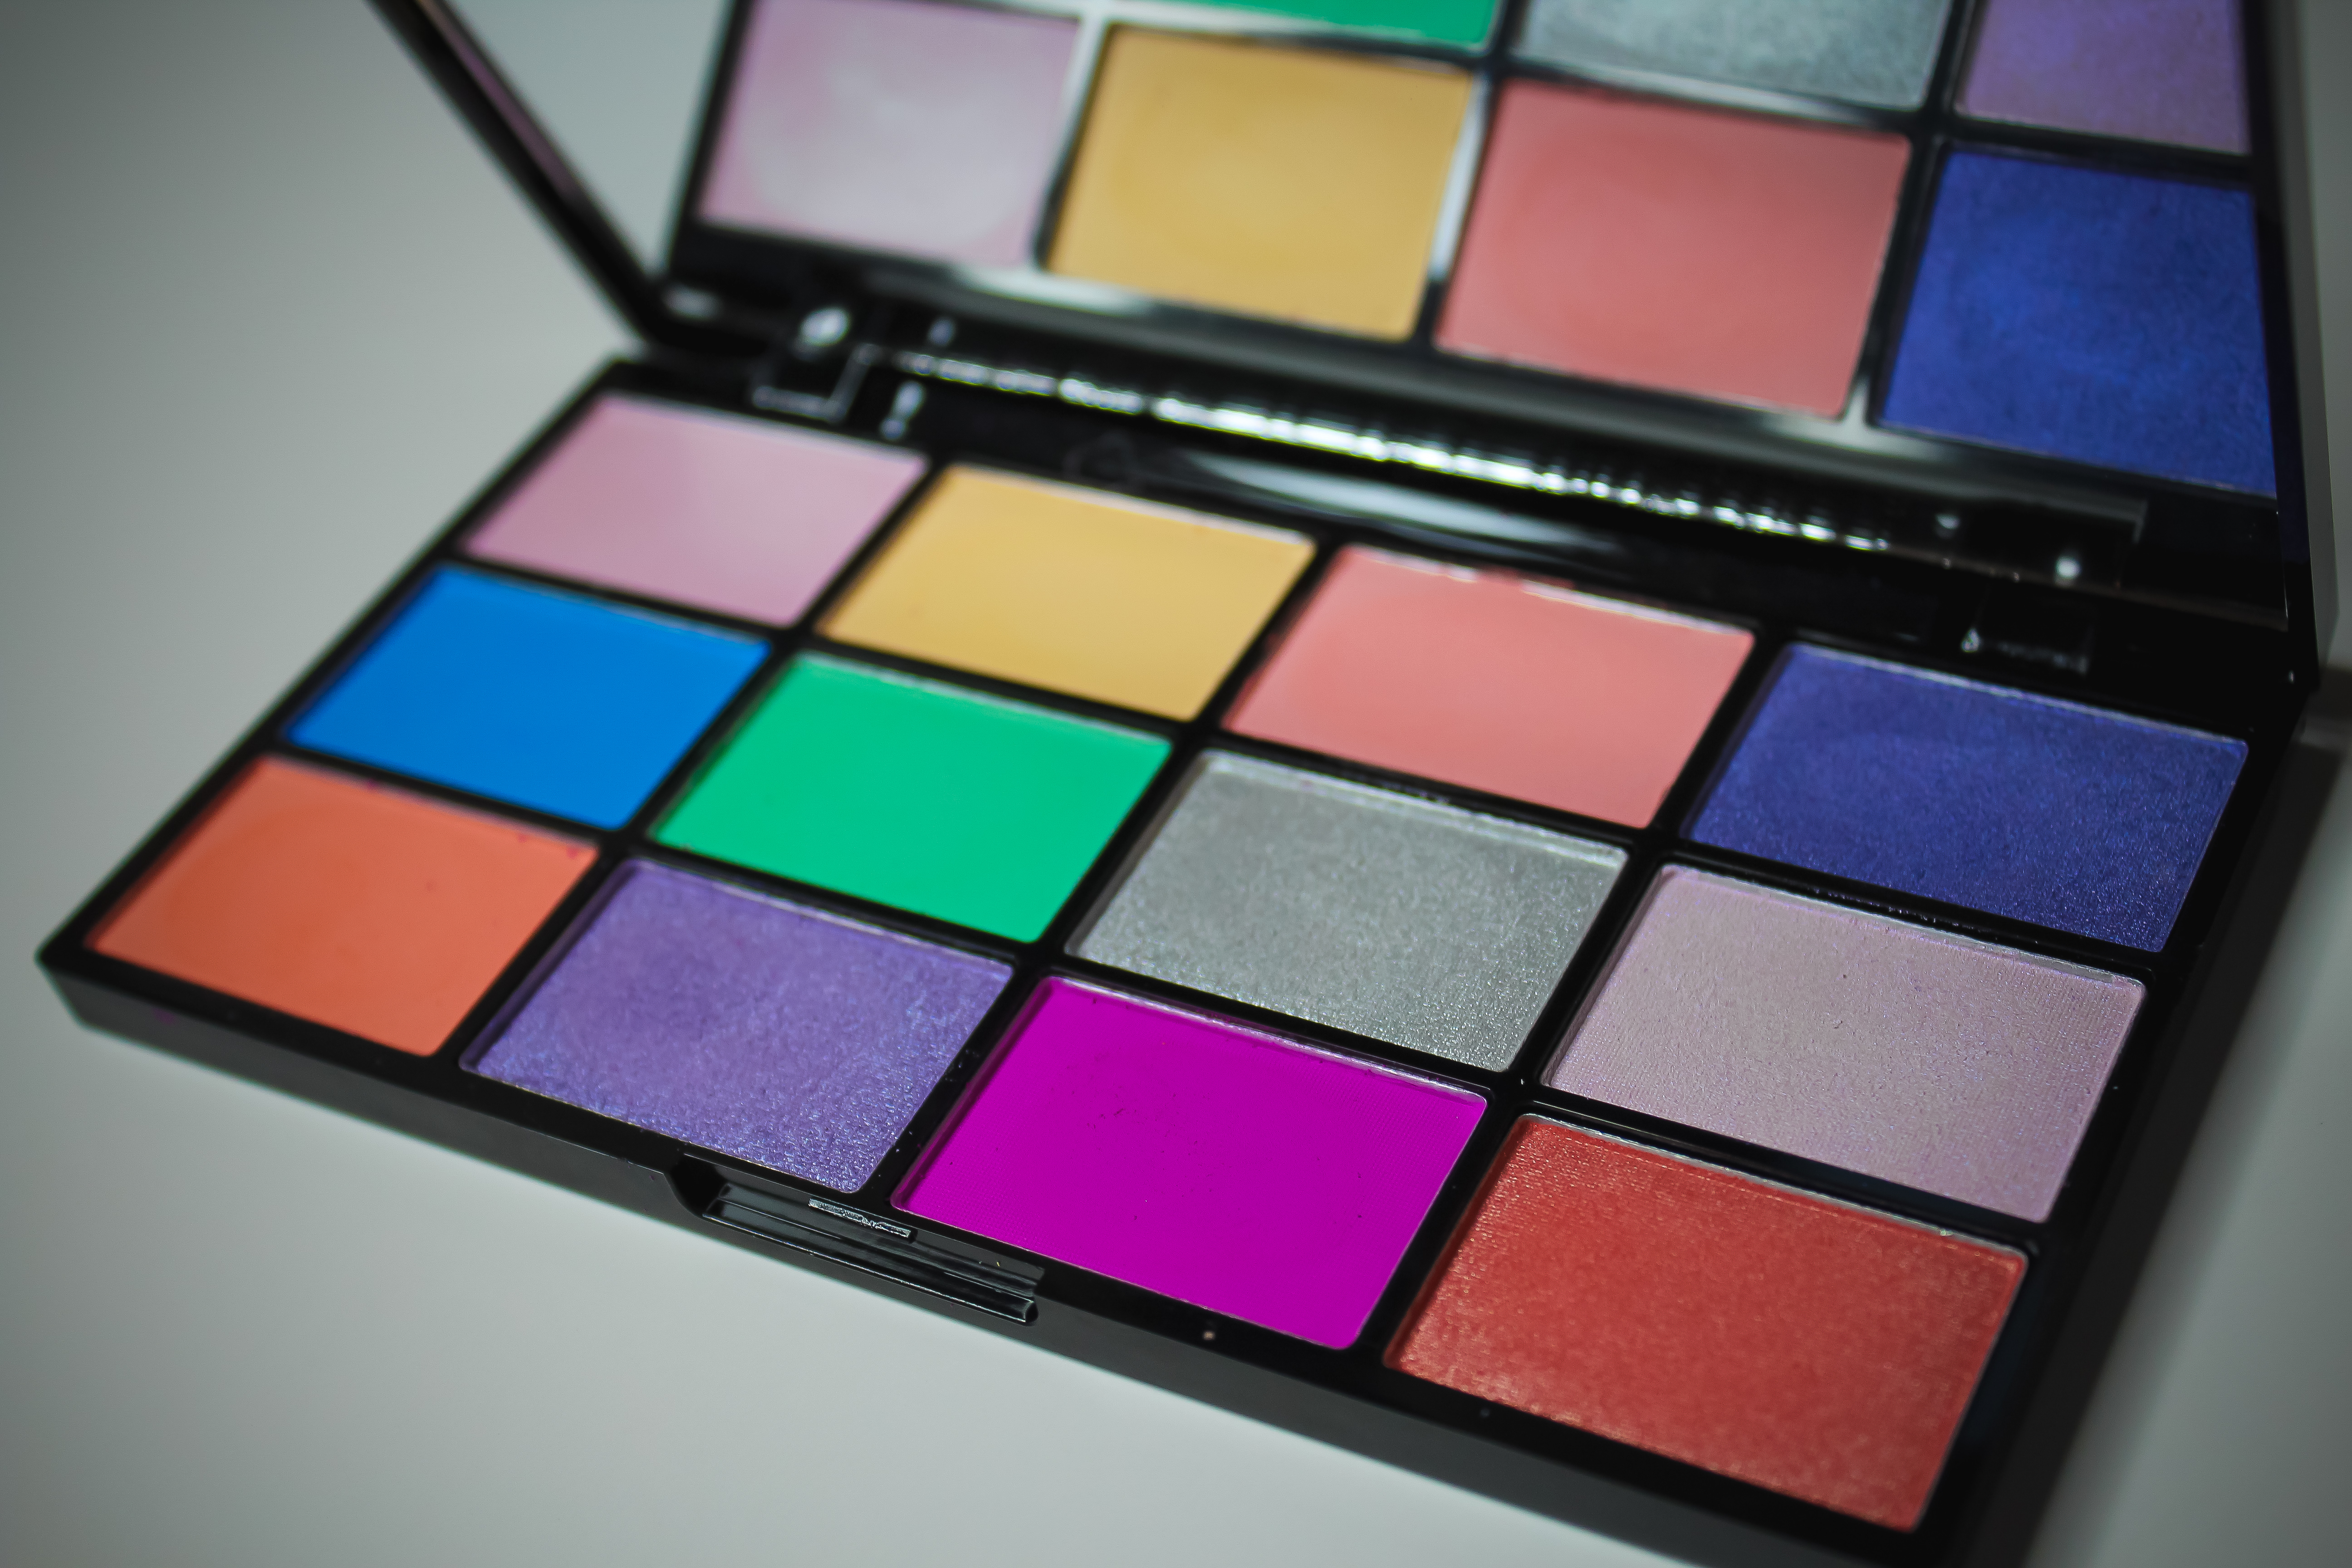 Nyx Cosmetics In Your Element Air Palette.jpg